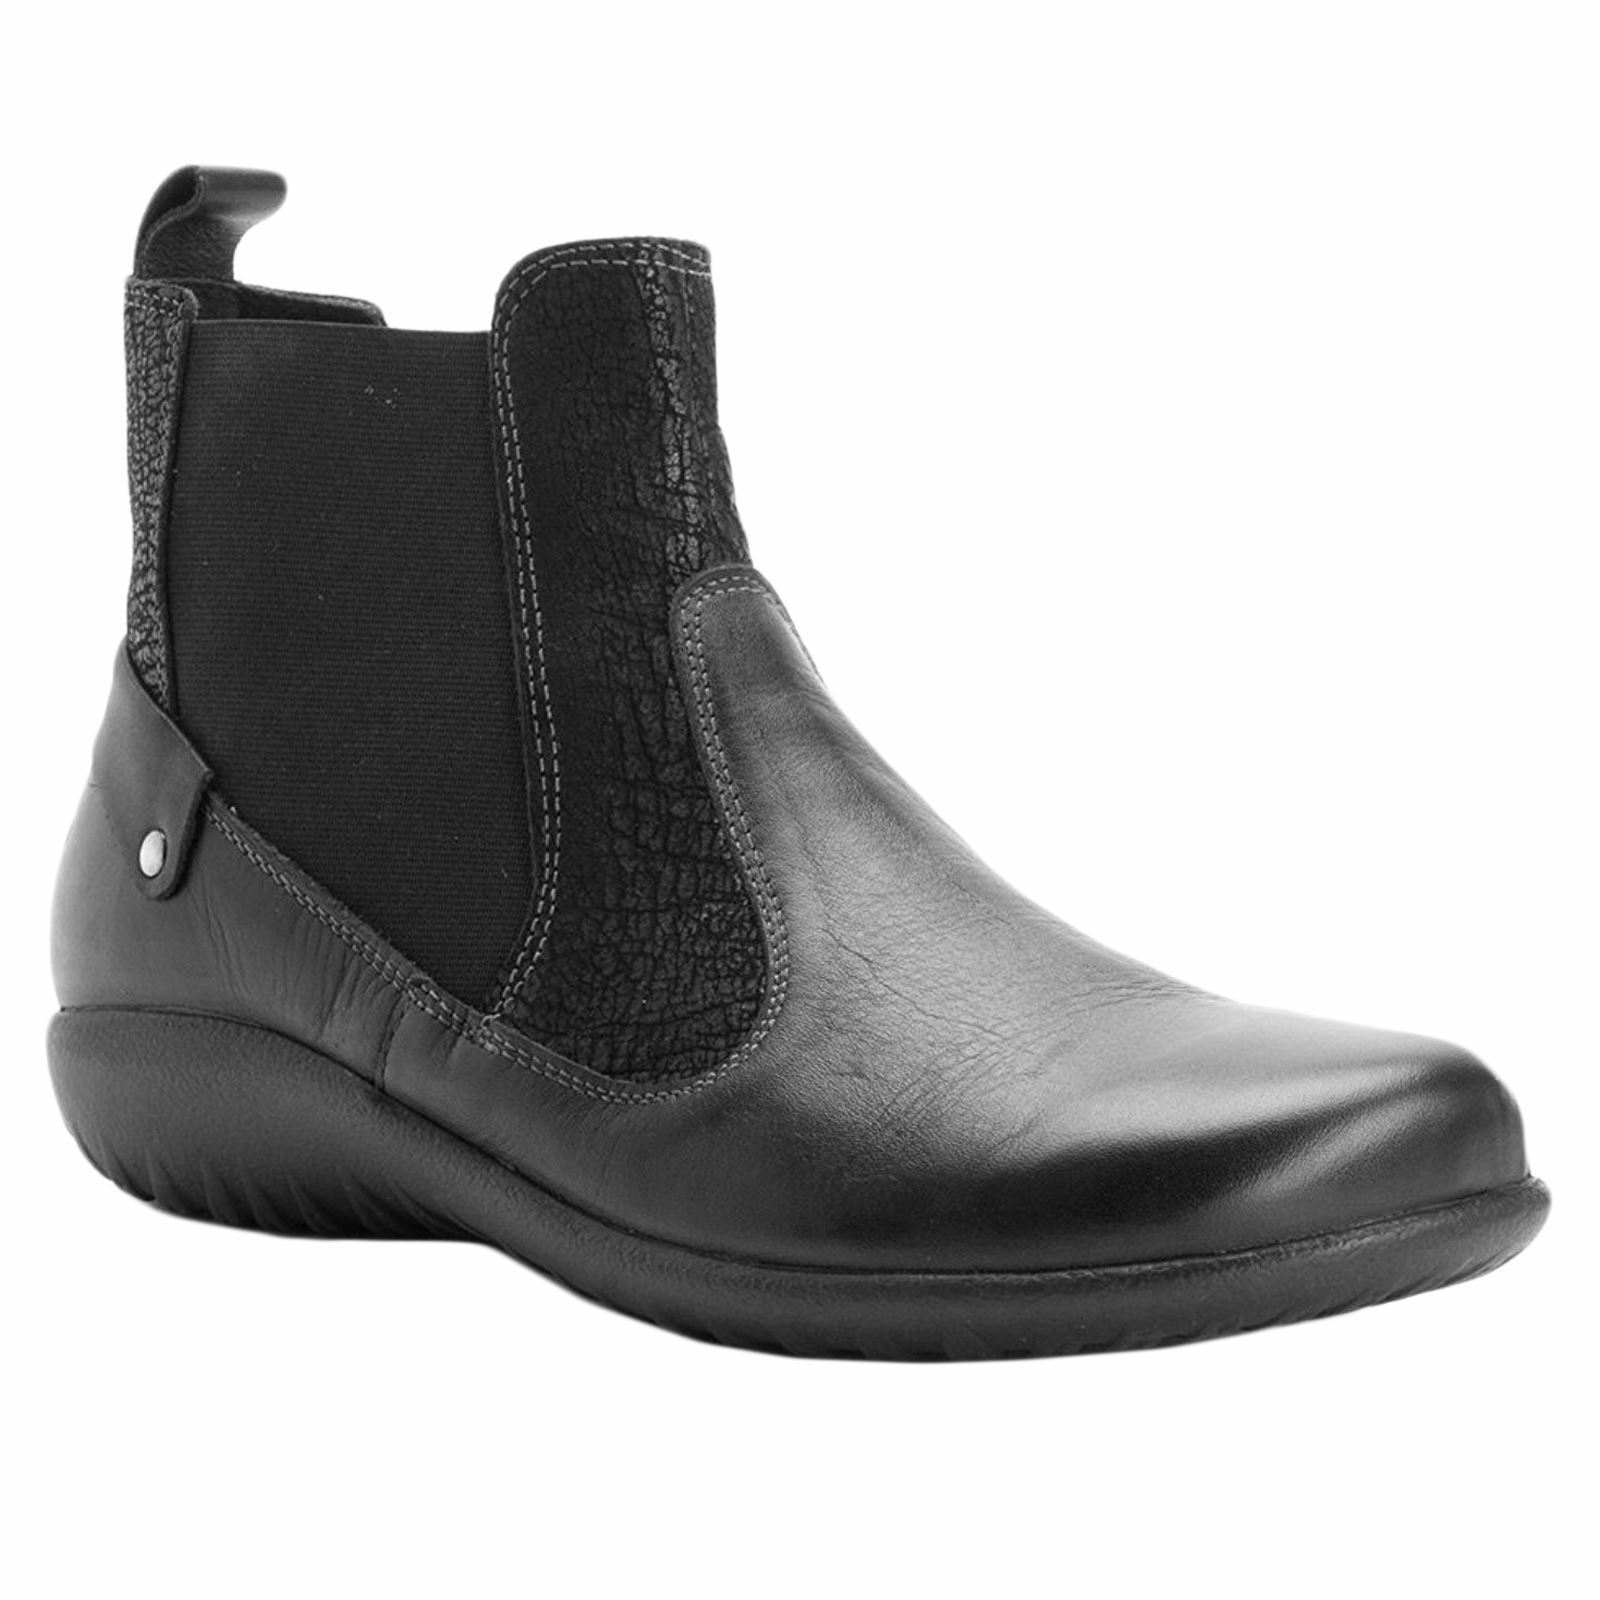 Naot Konini Black Raven Womens Leather Slip on Fashion Wedge Ankle Boots shoes